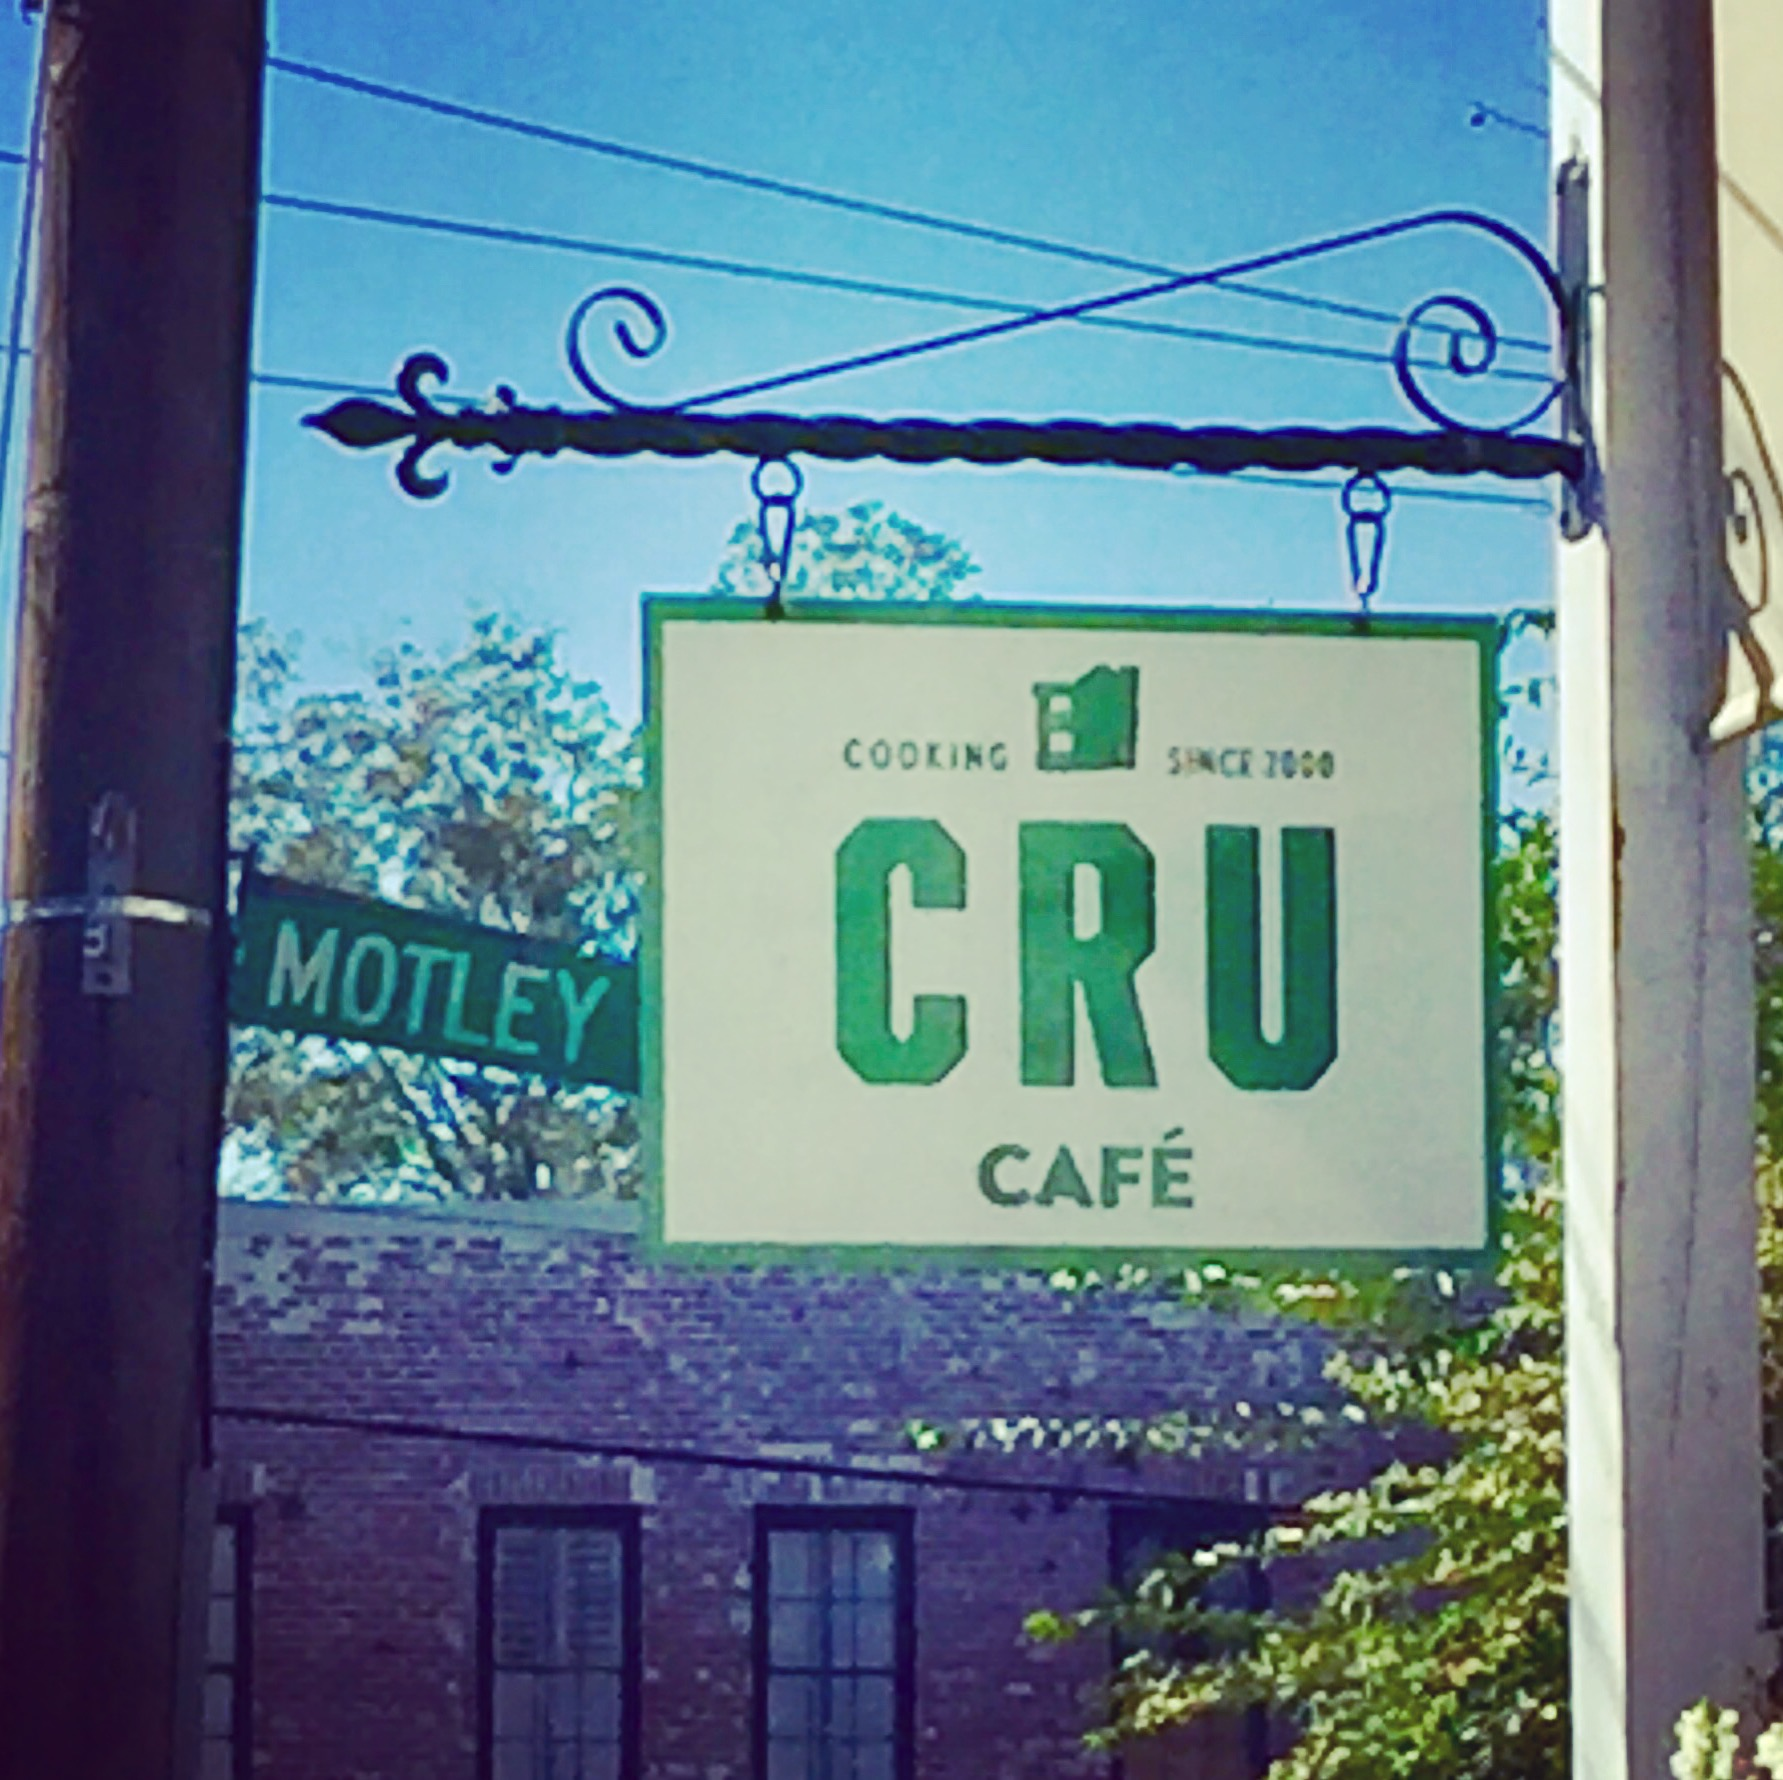 An interesting juxtaposition of signs at Cru Cafe.